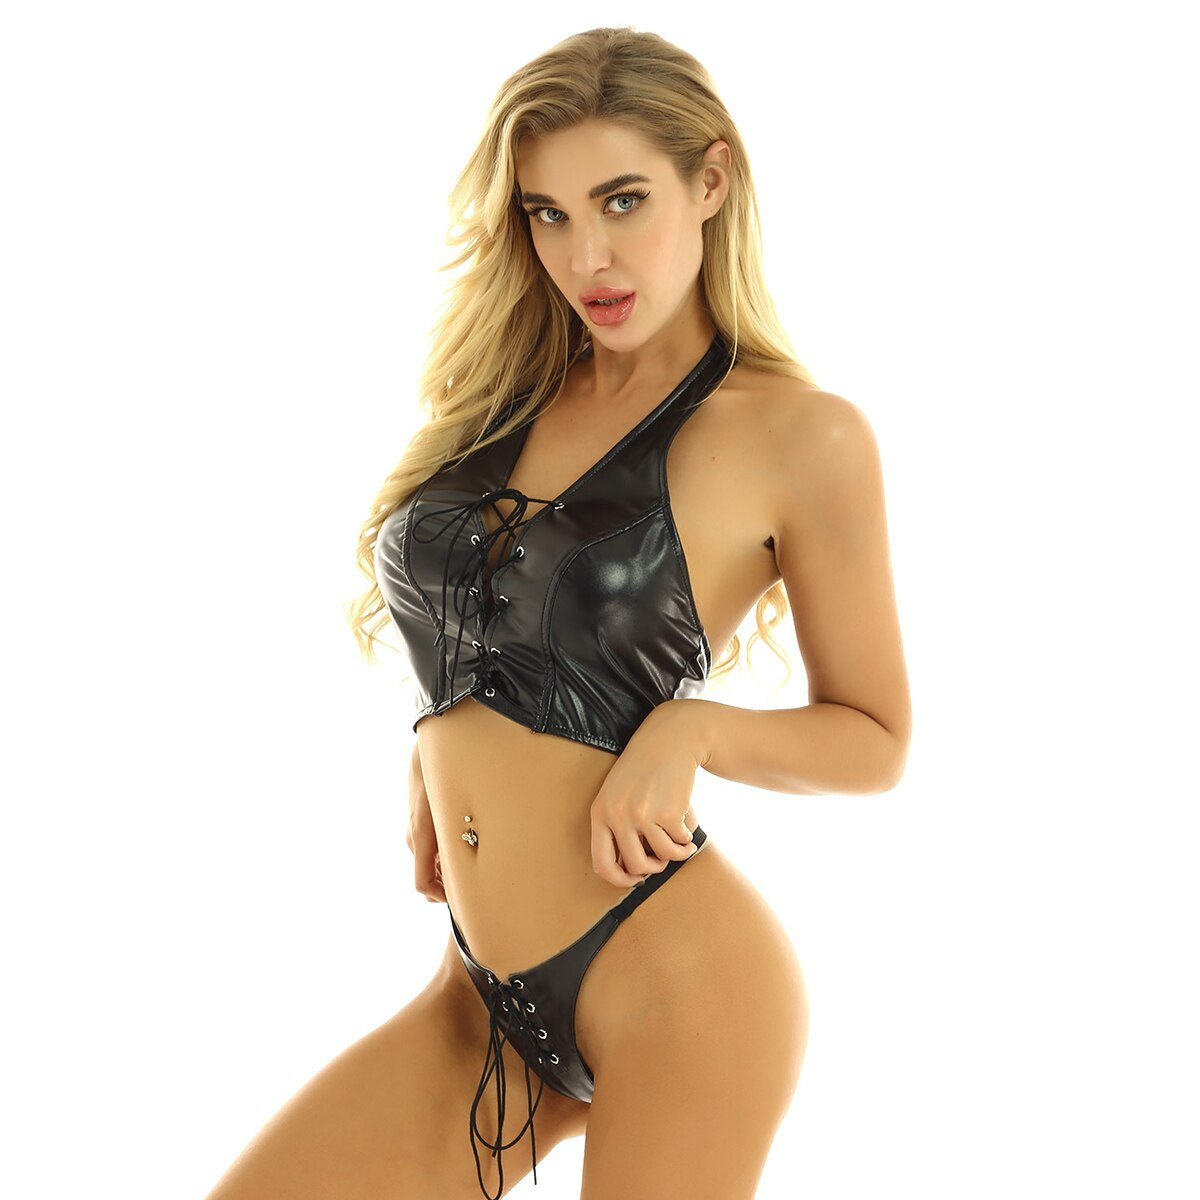 Women Vintage Faux Leather Clothing / Sexy Lace-Up Underwear for Women in Rock Style - HARD'N'HEAVY